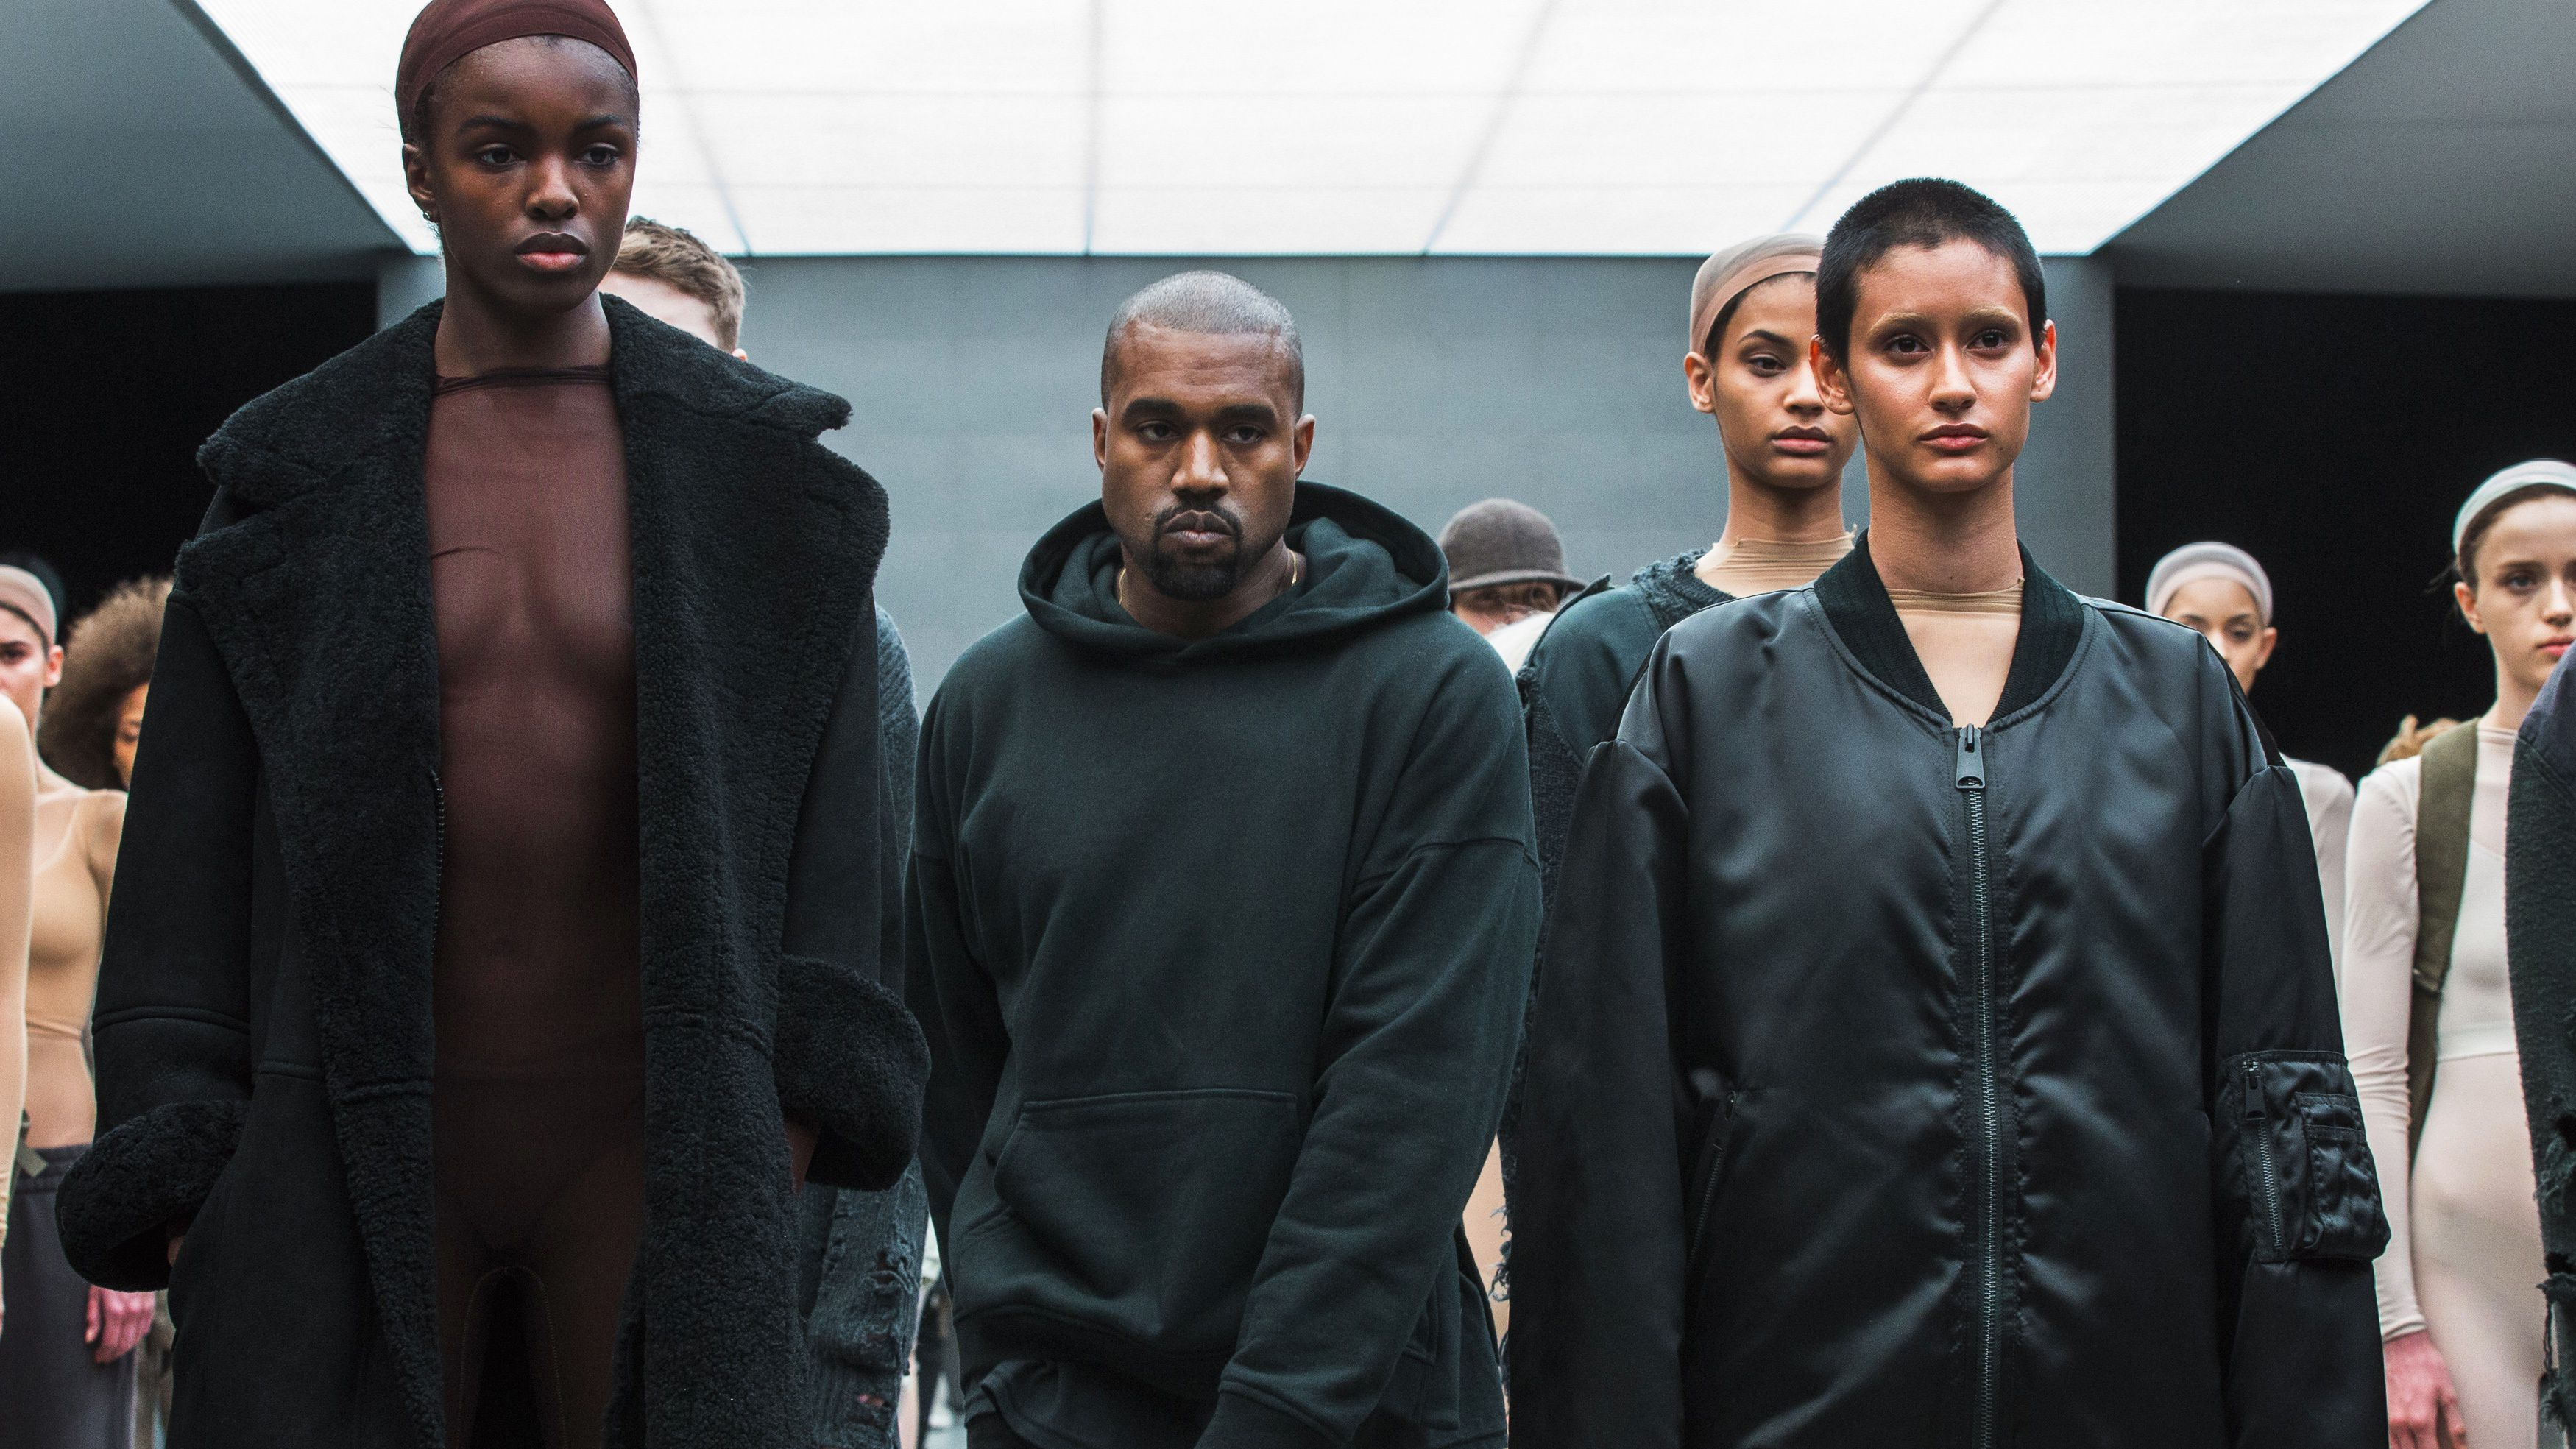 kanye west, fall 2015, most viewed, style.com, new york fashion week, presentation, runway show